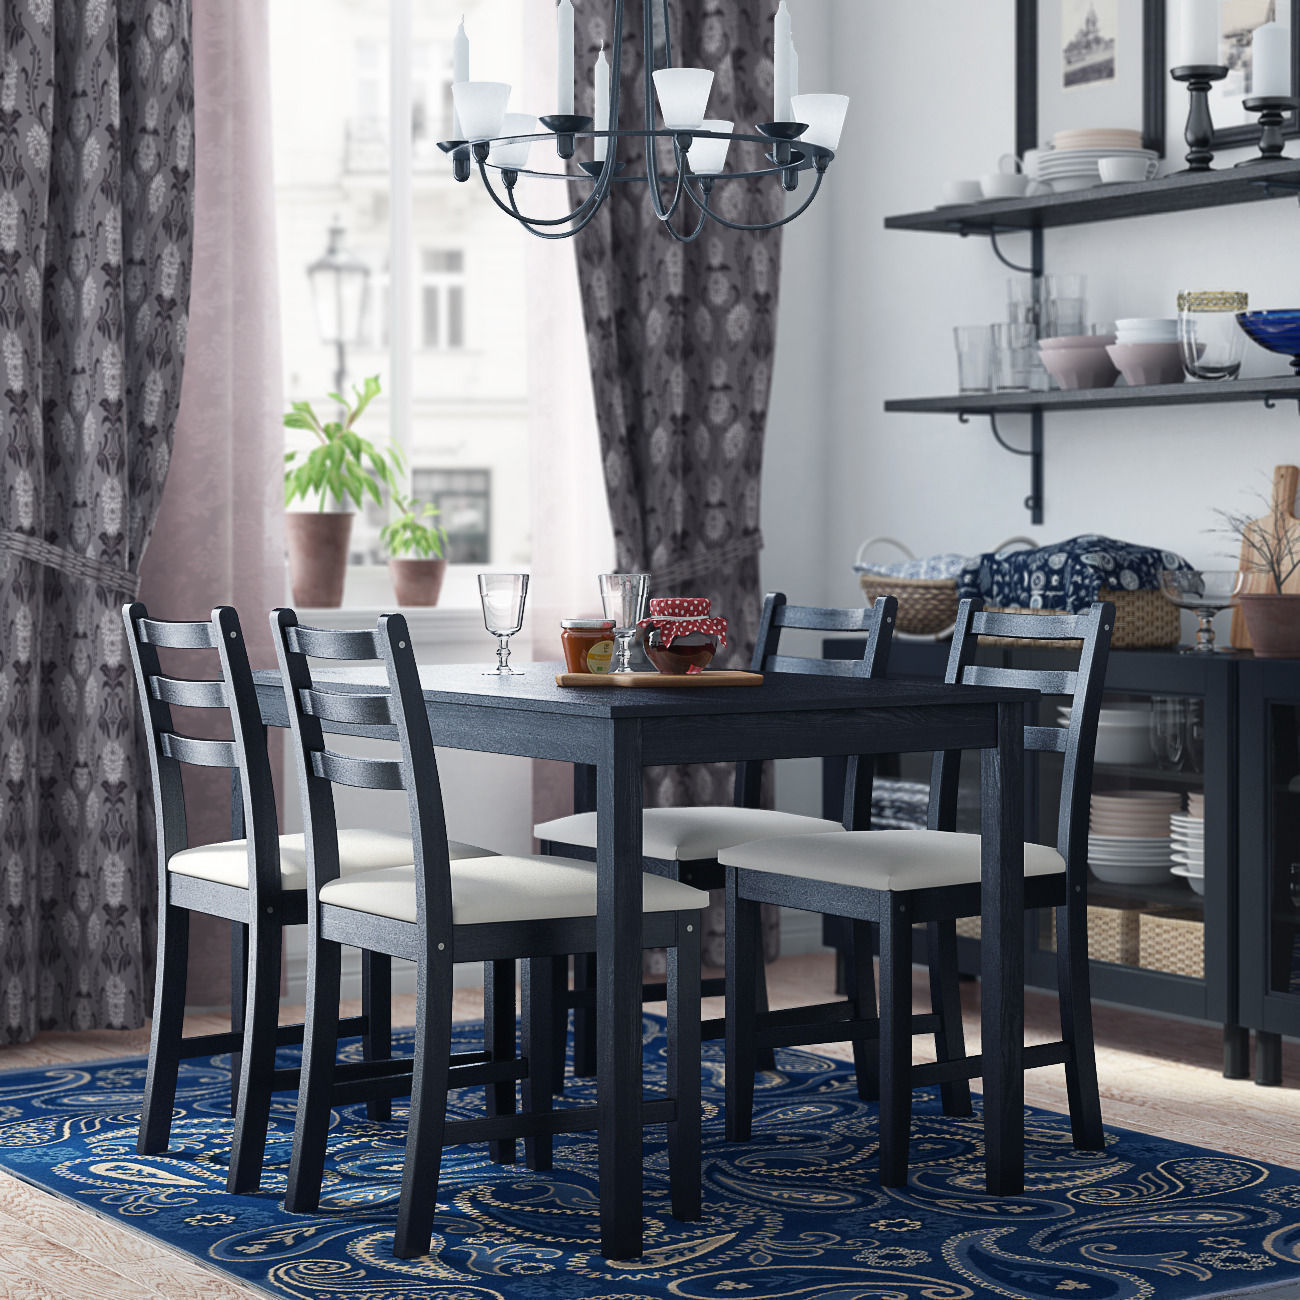 ikea lerhamn dining room 3d model ikea lerhamn dining room modeling in